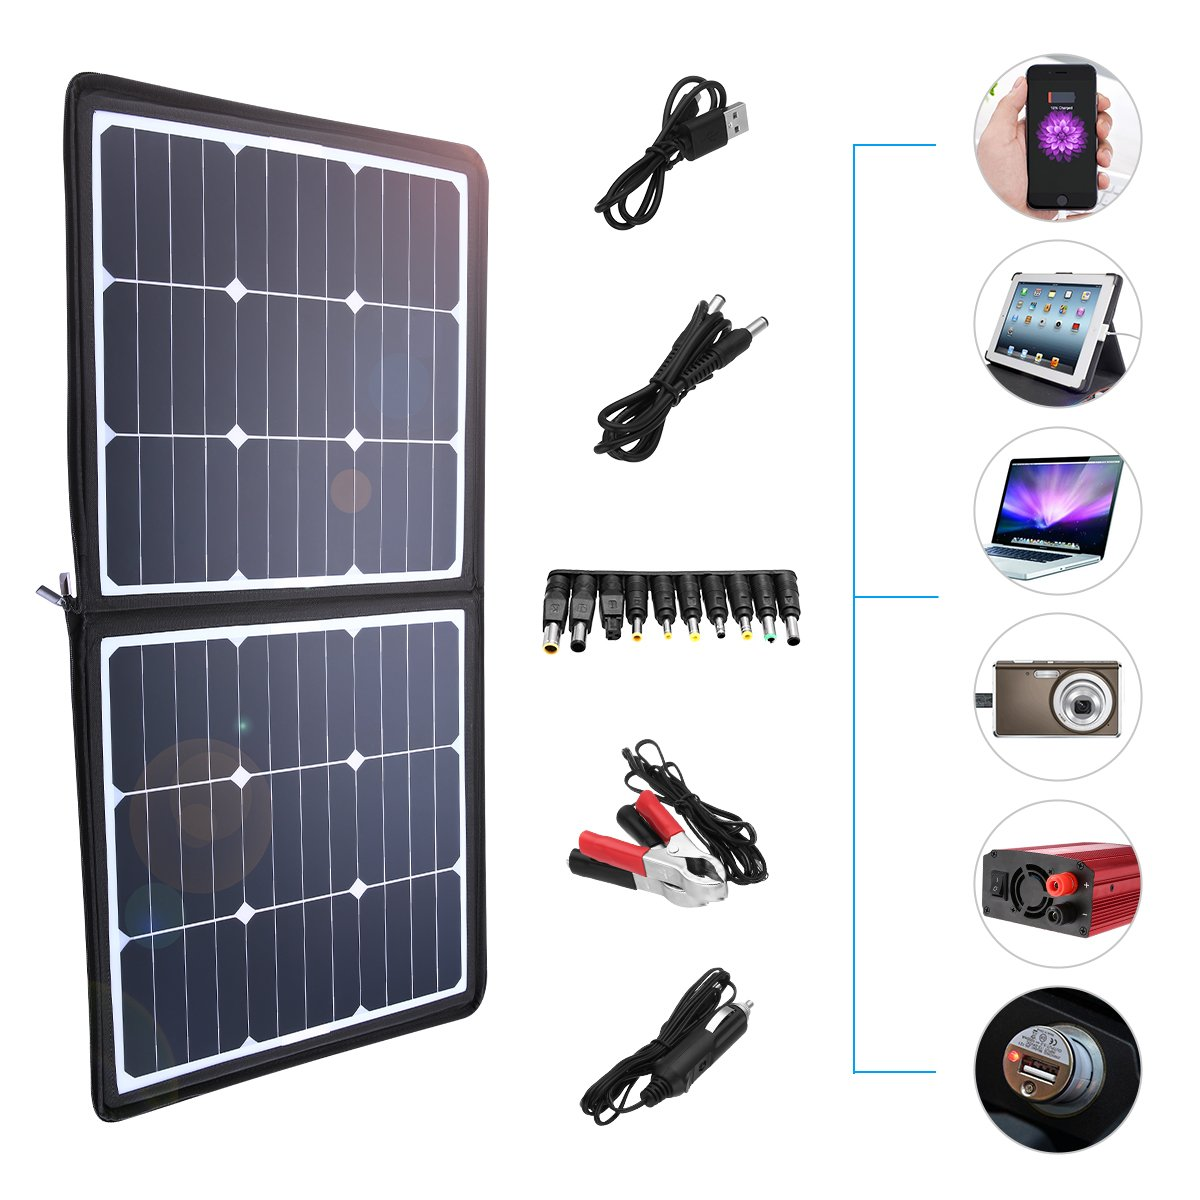 POWERADD [High Efficiency] 50W Solar Charger, 18V 12V SUNPOWER Solar Panel for Laptop, iPhone X / 8/8 Plus, iPad Pro, iPad mini, Macbook, iPad Samsung, ChargerCenter, Island Region and Country Tours by POWERADD (Image #4)